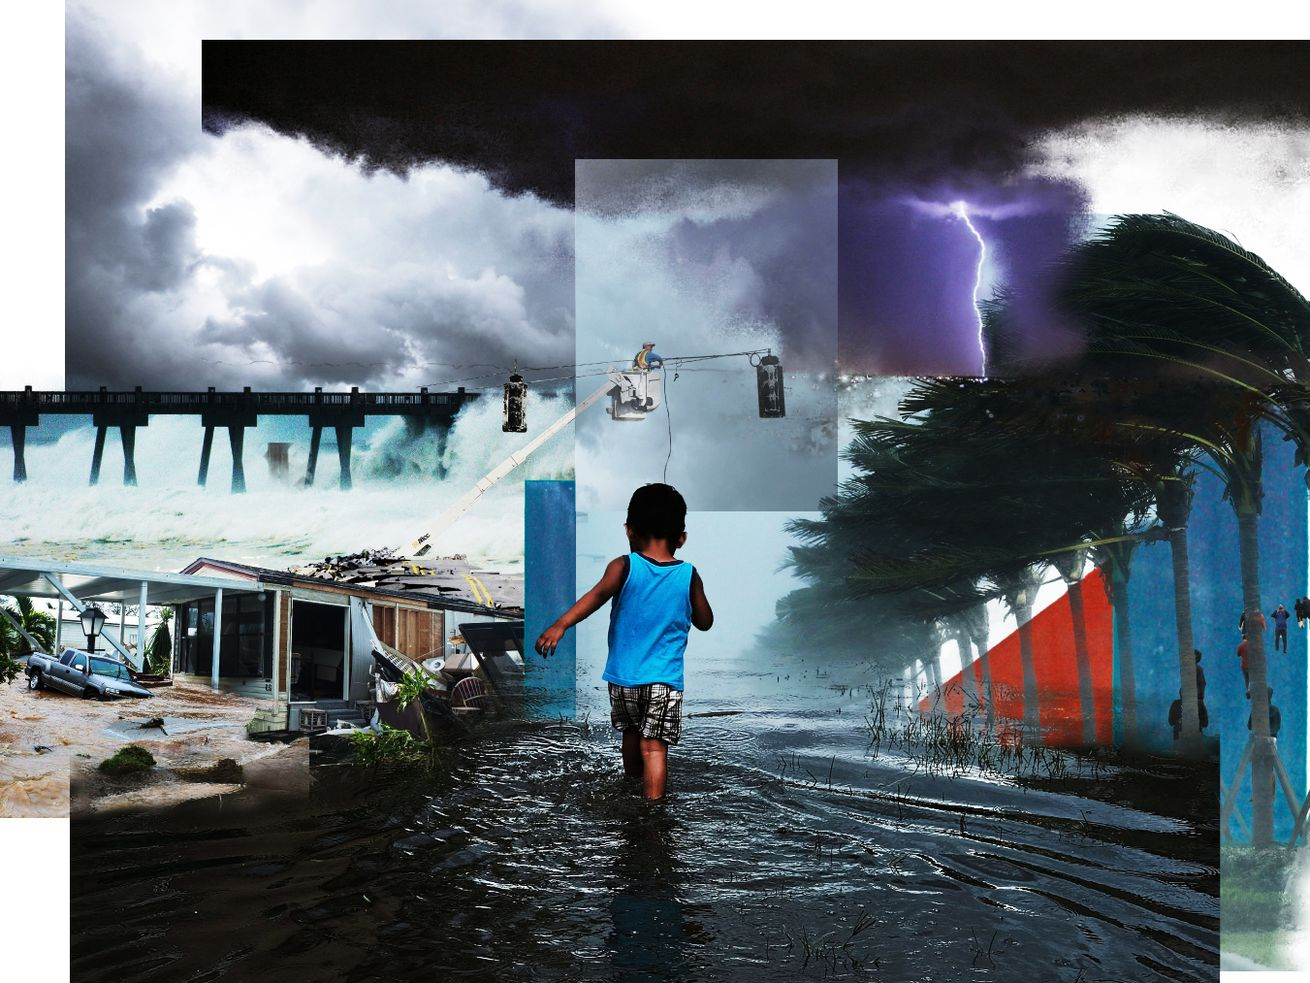 A photo illustration of a children wading through water with surrounding pictures of wind, weather, and destruction.